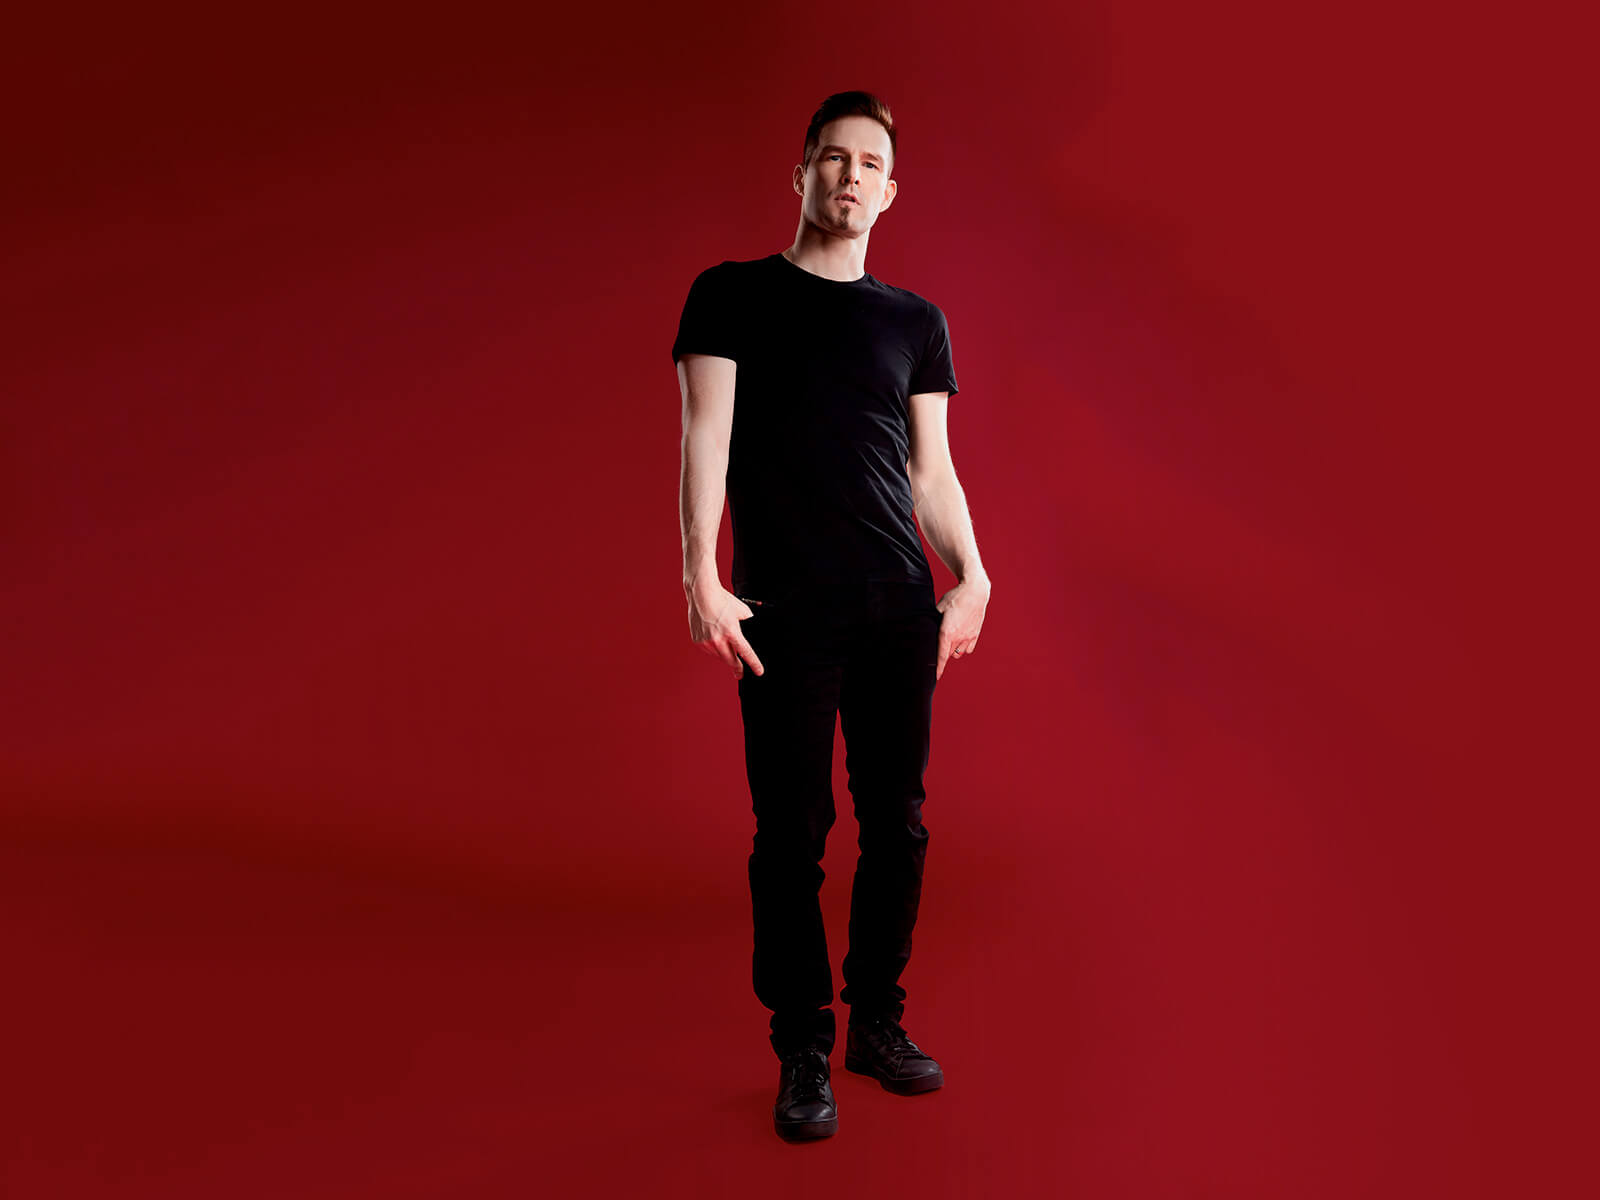 darude-australia-tour-new-zealand-2020-oz-edm-feature